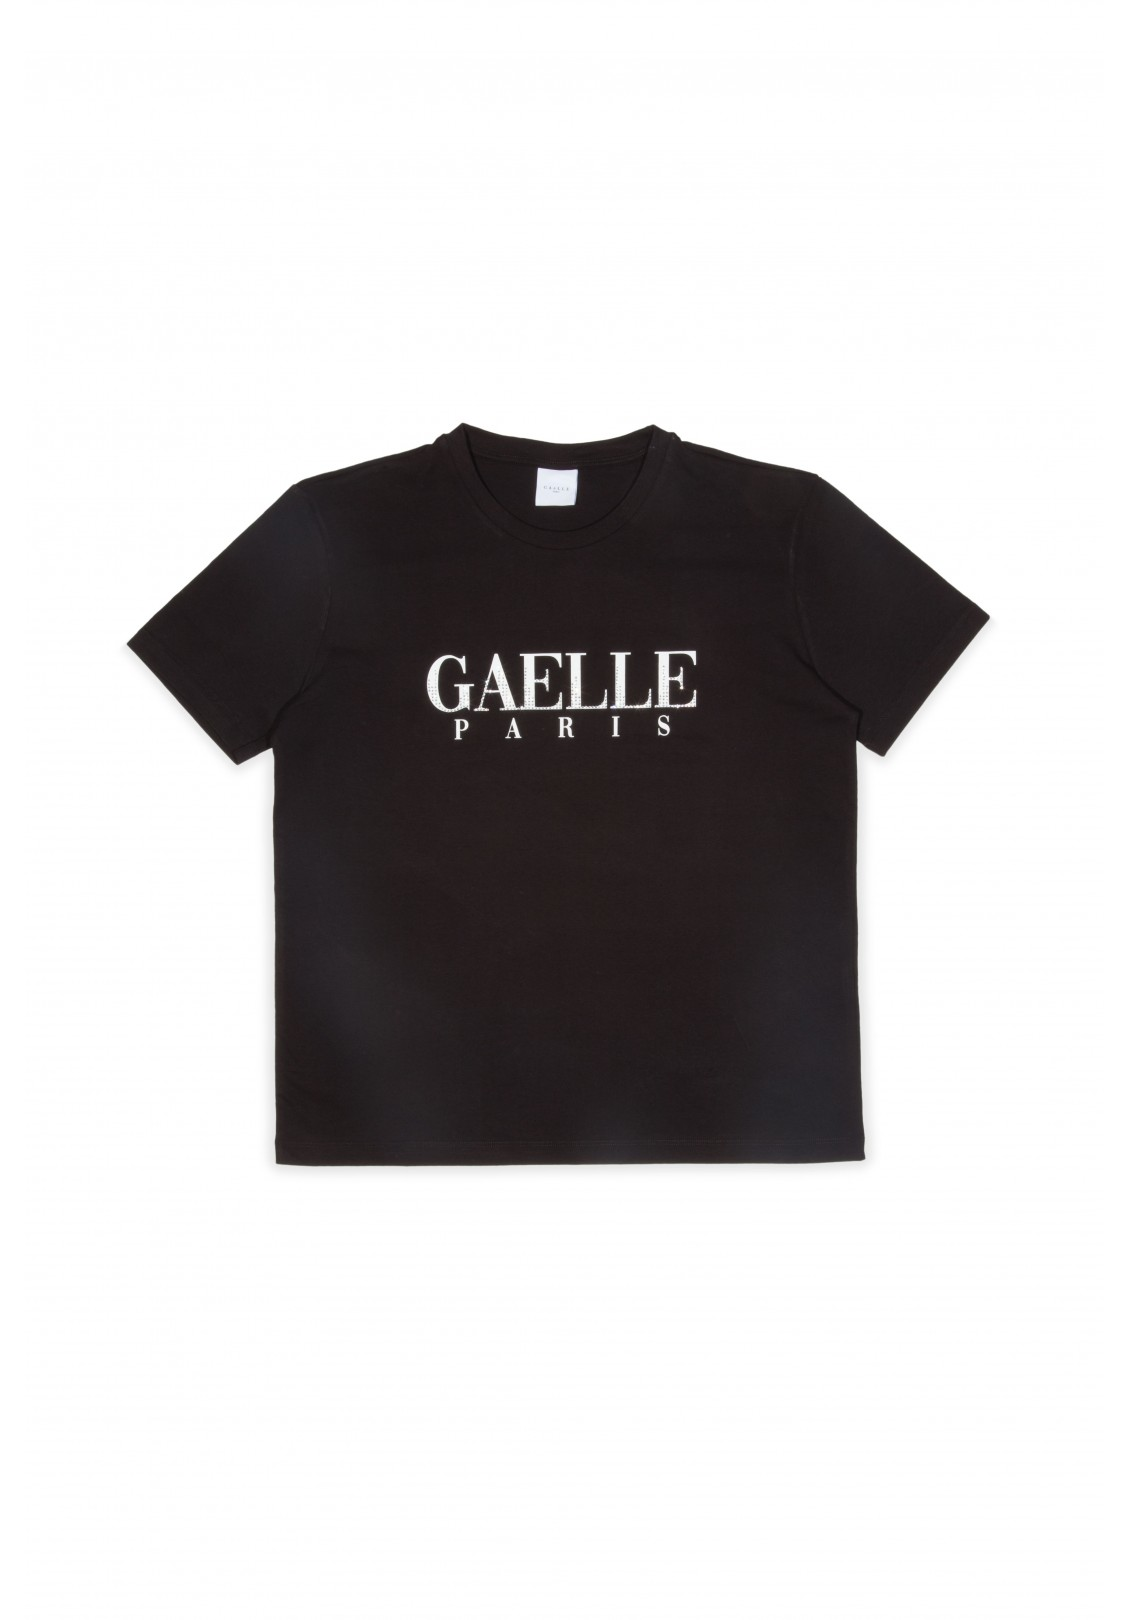 T-SHIRT - GBD4712 - GAELLE PARIS